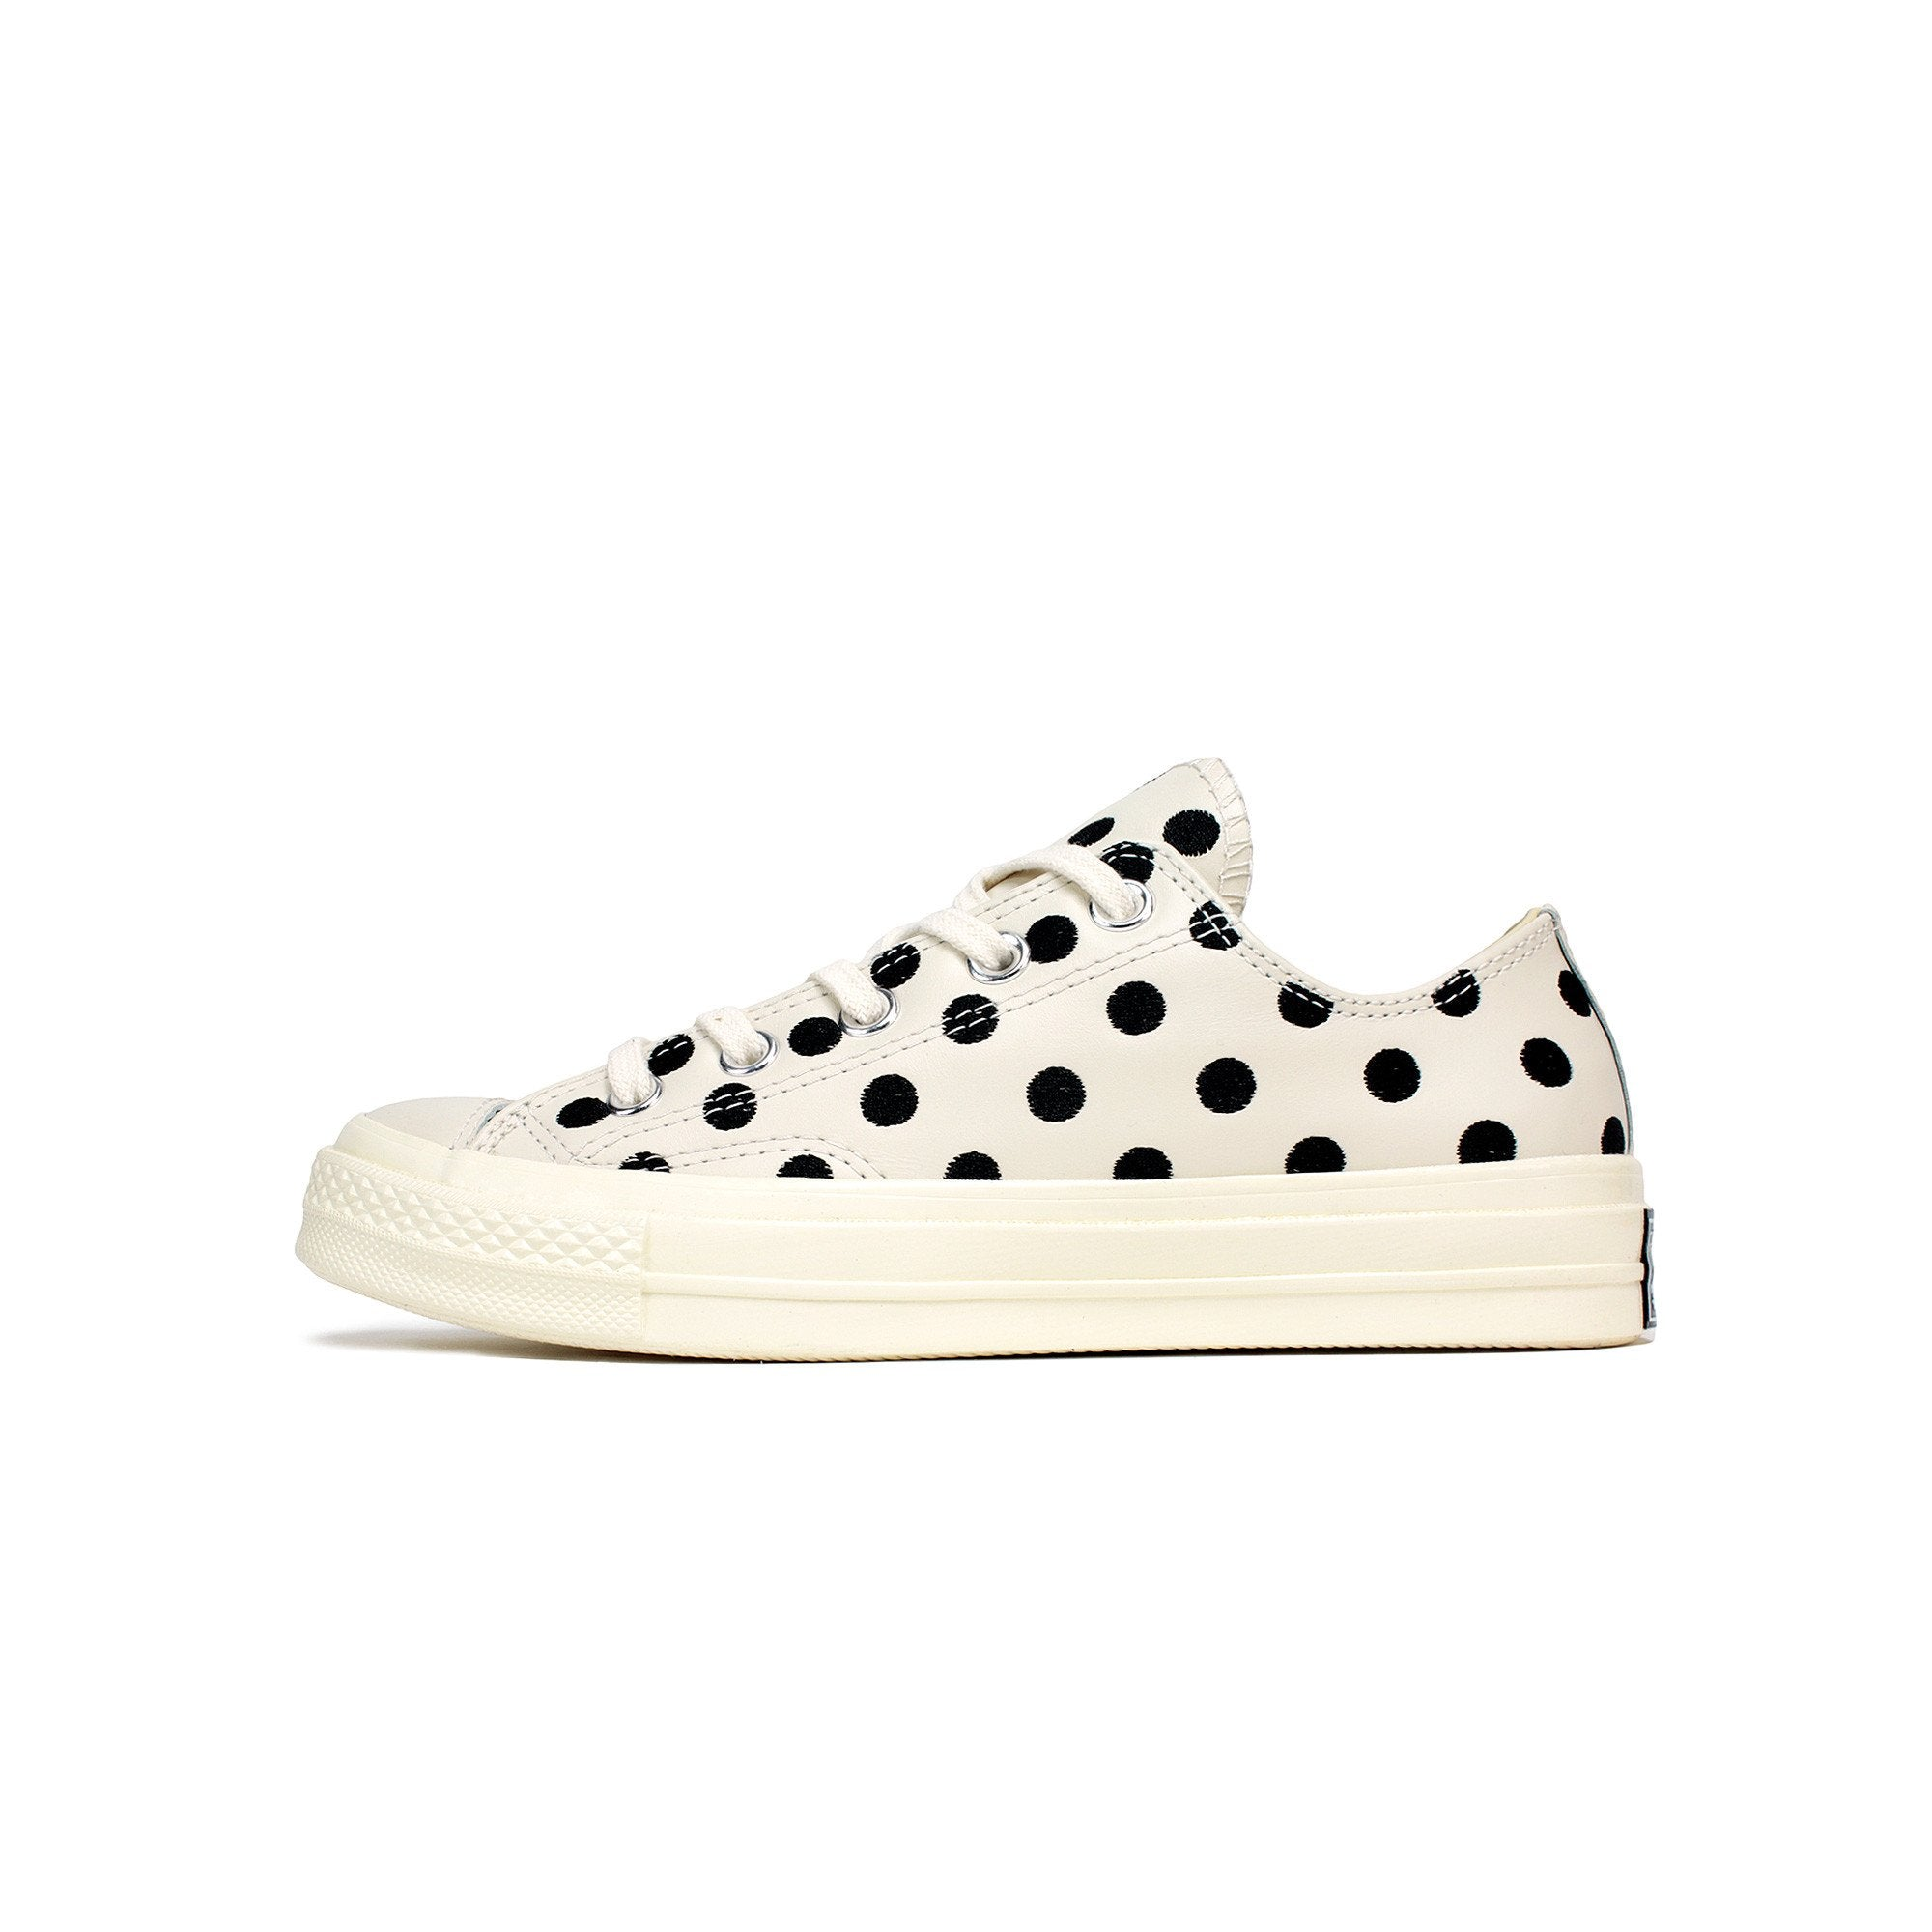 87ed03f9d342 Details about Men s Converse Chuck Taylor All Star 70s Ox Polka Dot  Parchment Black 155460C